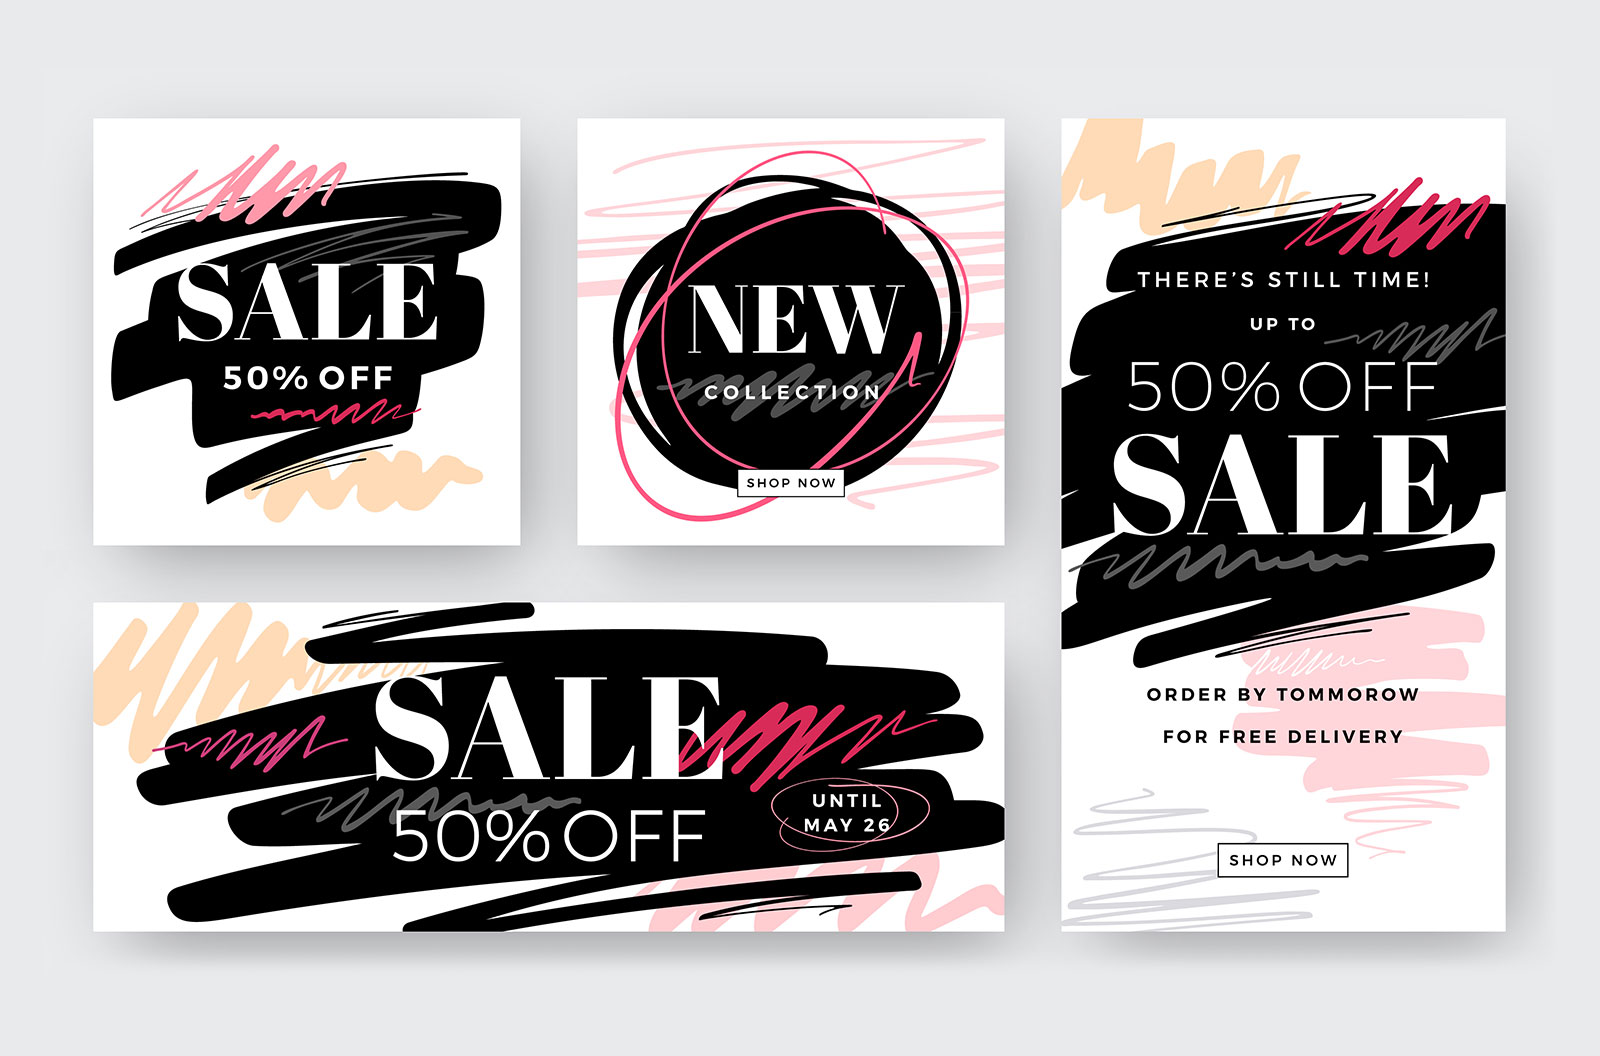 Set of modern abstract web banners for a retail shop with sales messaging